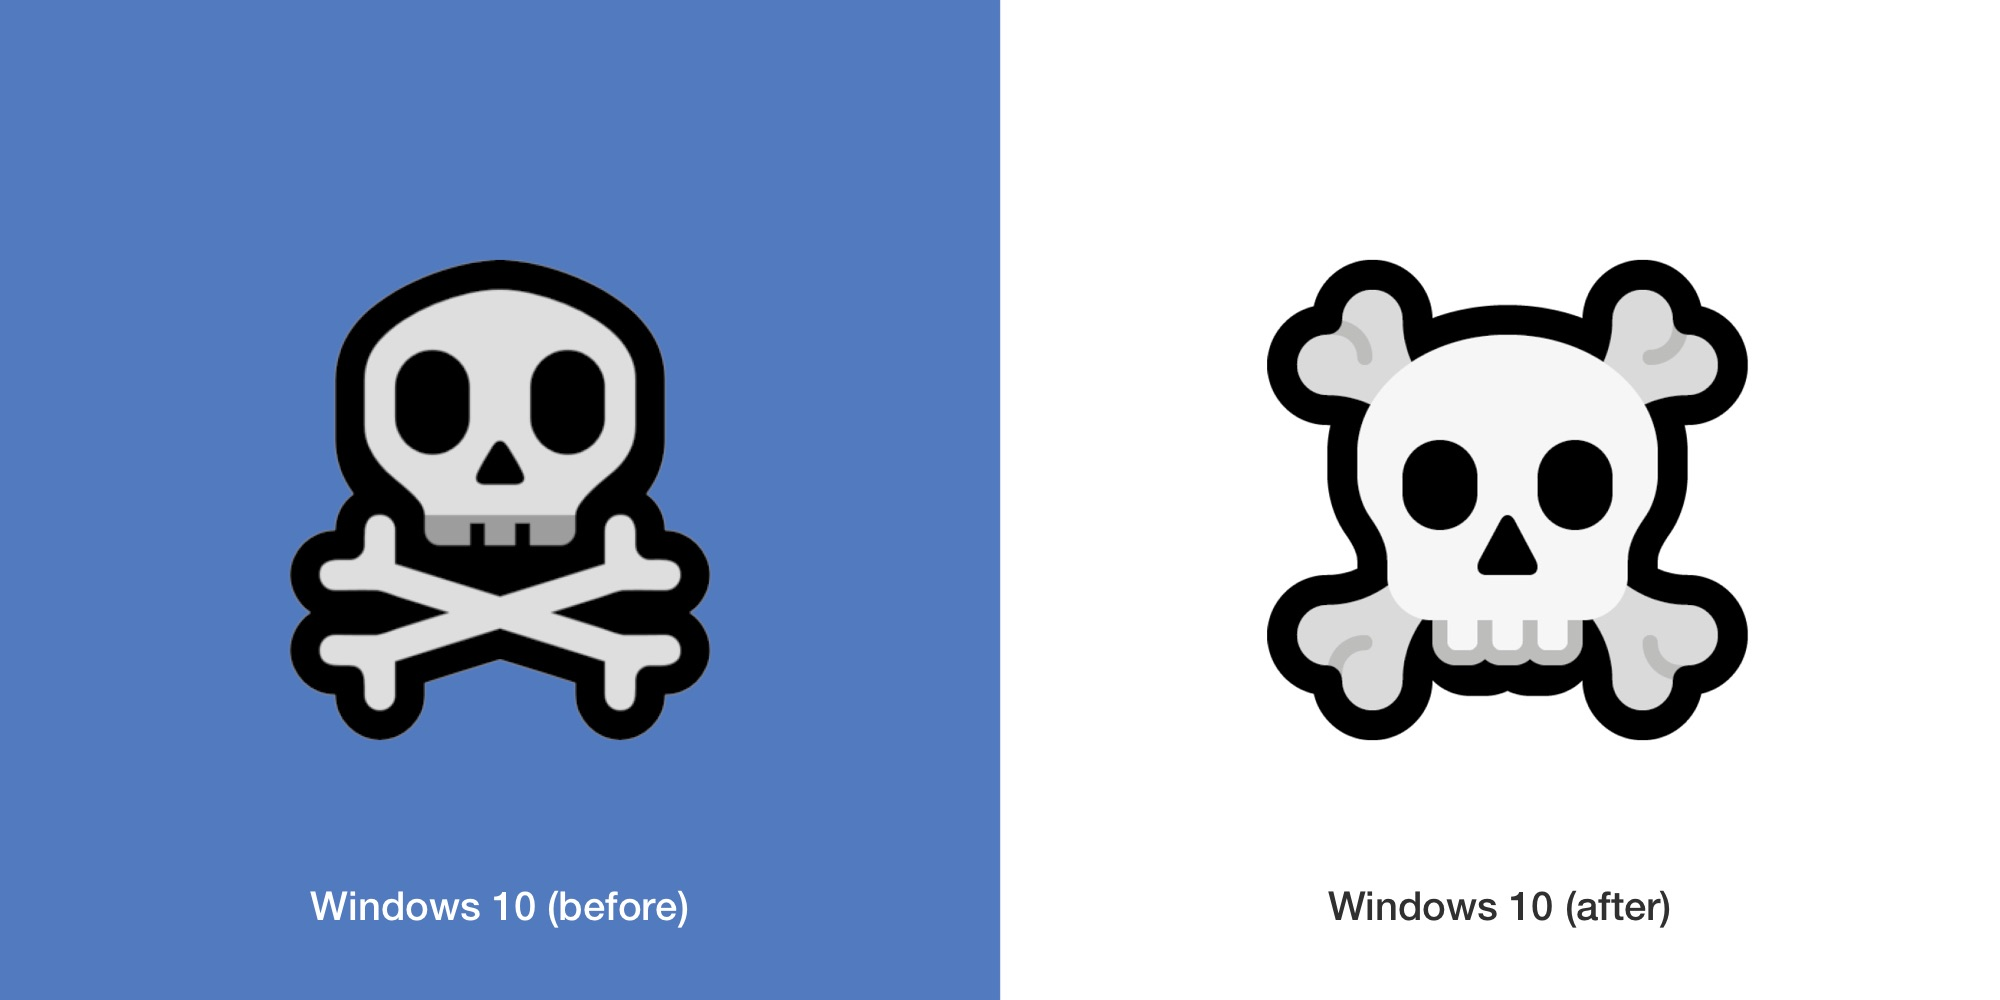 skull-and-crossbones-emojipedia-windows10-april-2018-emojipedia